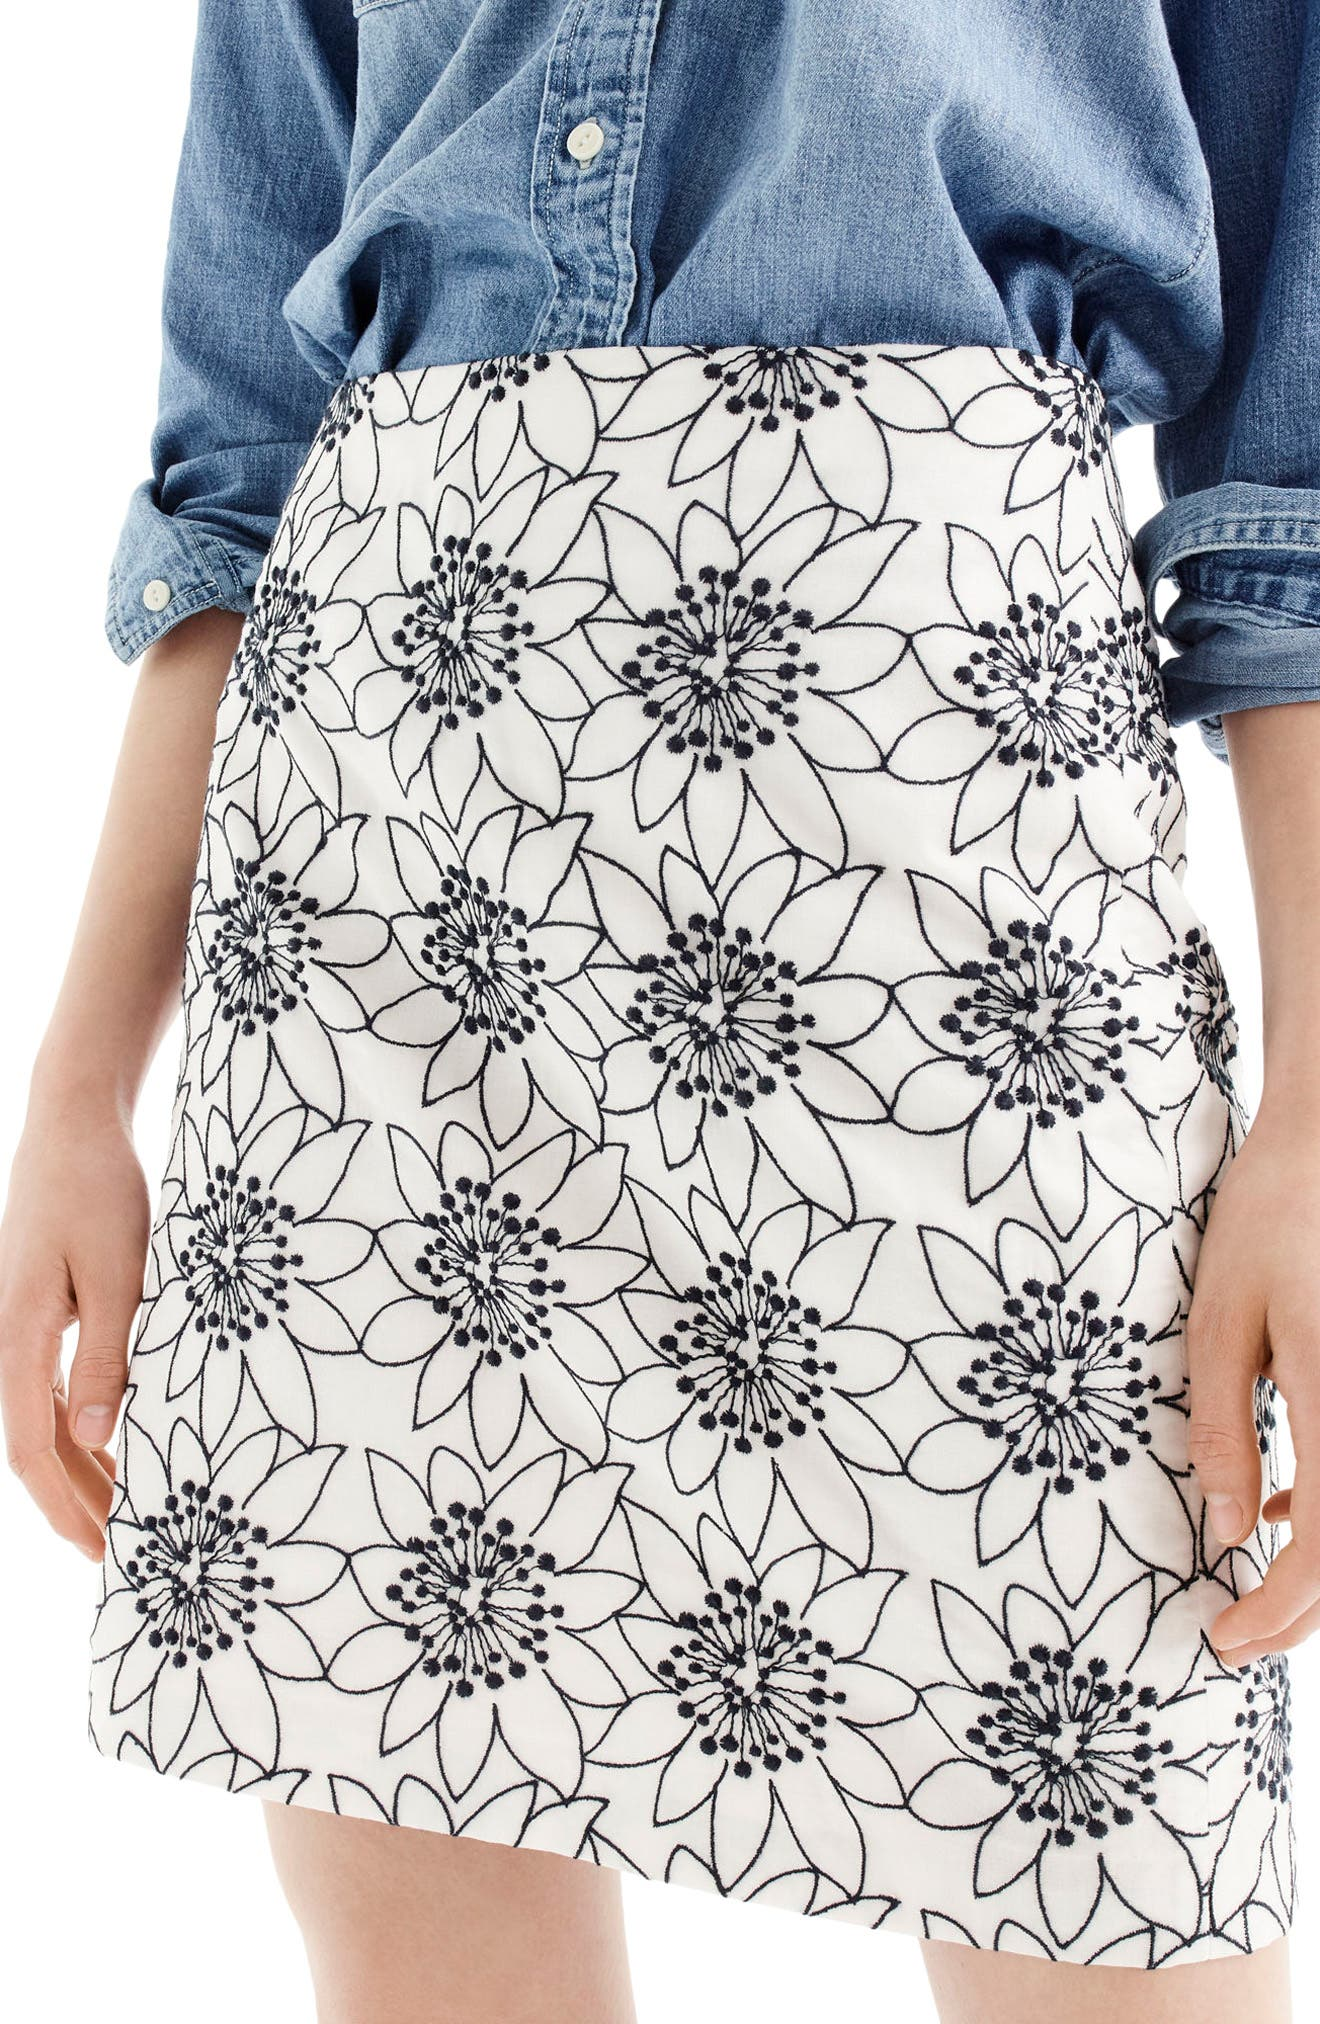 J.Crew Embroidered Floral Miniskirt (Regular & Petite)